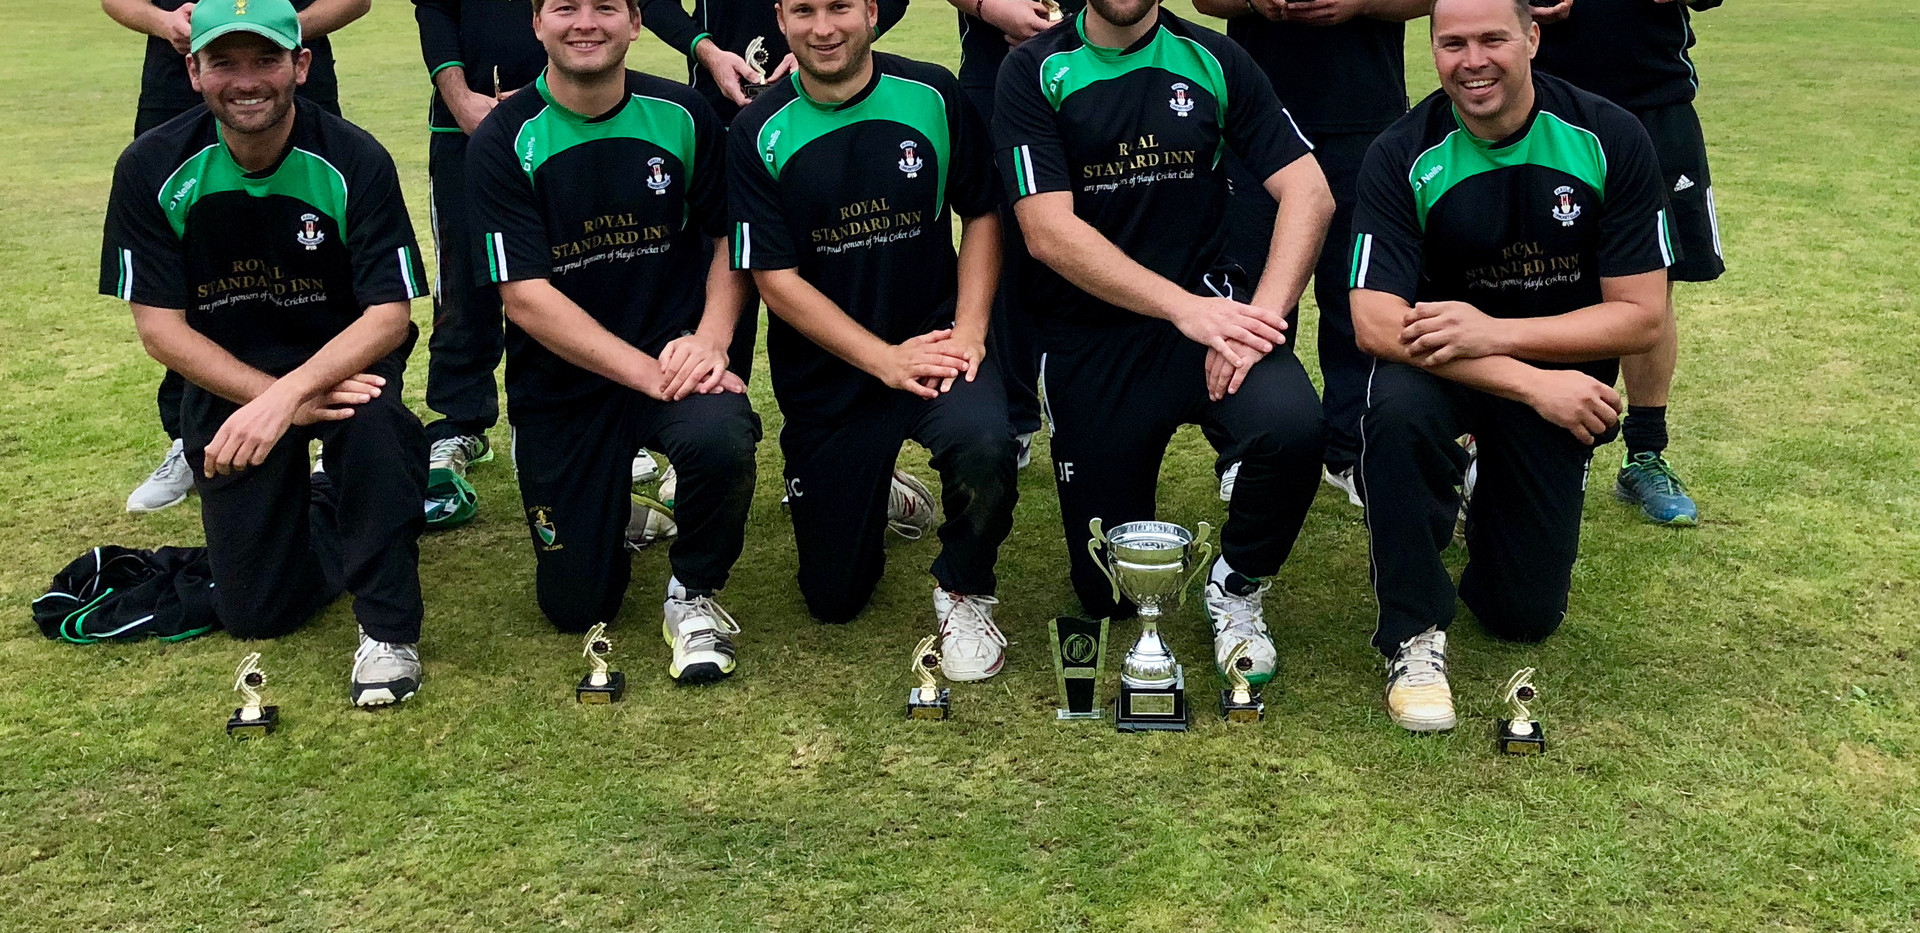 Eden Motorhomes Division 2 T20 cup Champions